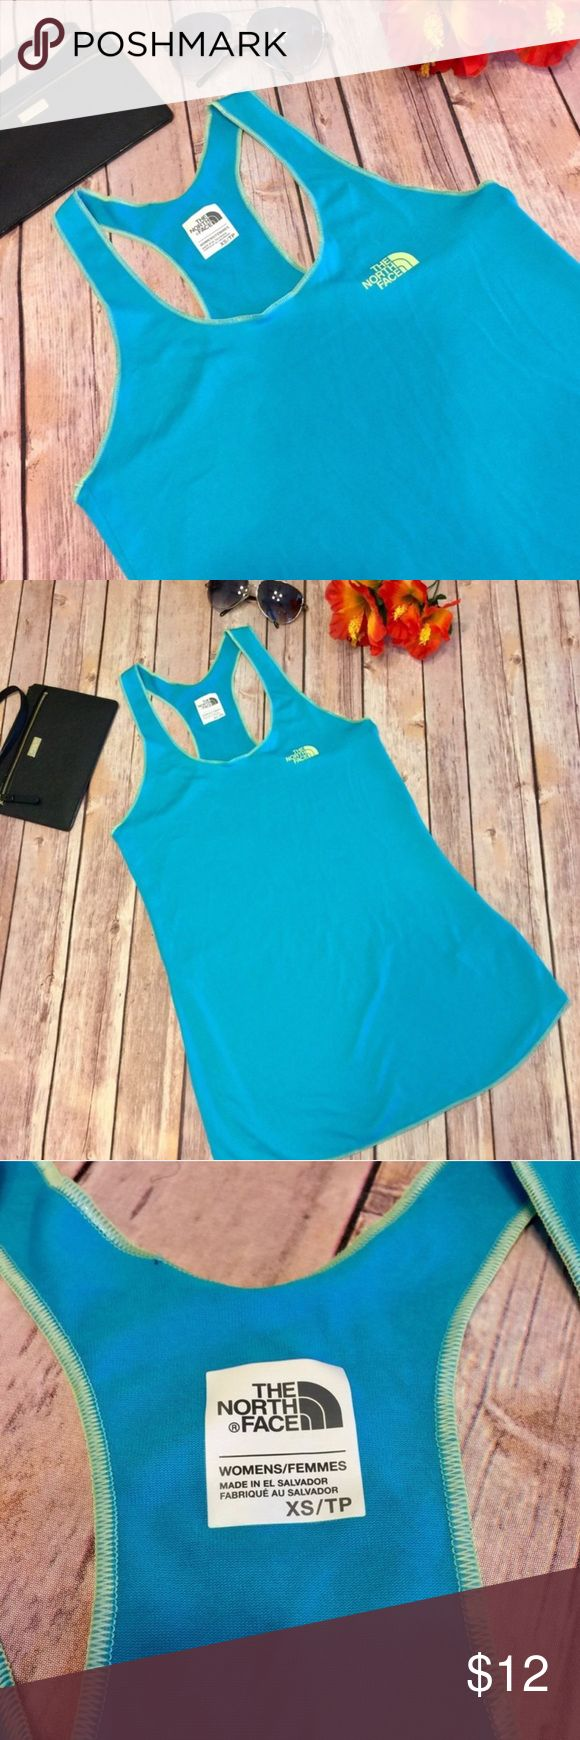 ⚡️SALE⚡️ The North Face Teal Athletic Tank Top Excellent Condition Like New! The North Face Women's Size XS Racerback Tank Top. Fits More Like A Small The North Face Tops Tank Tops